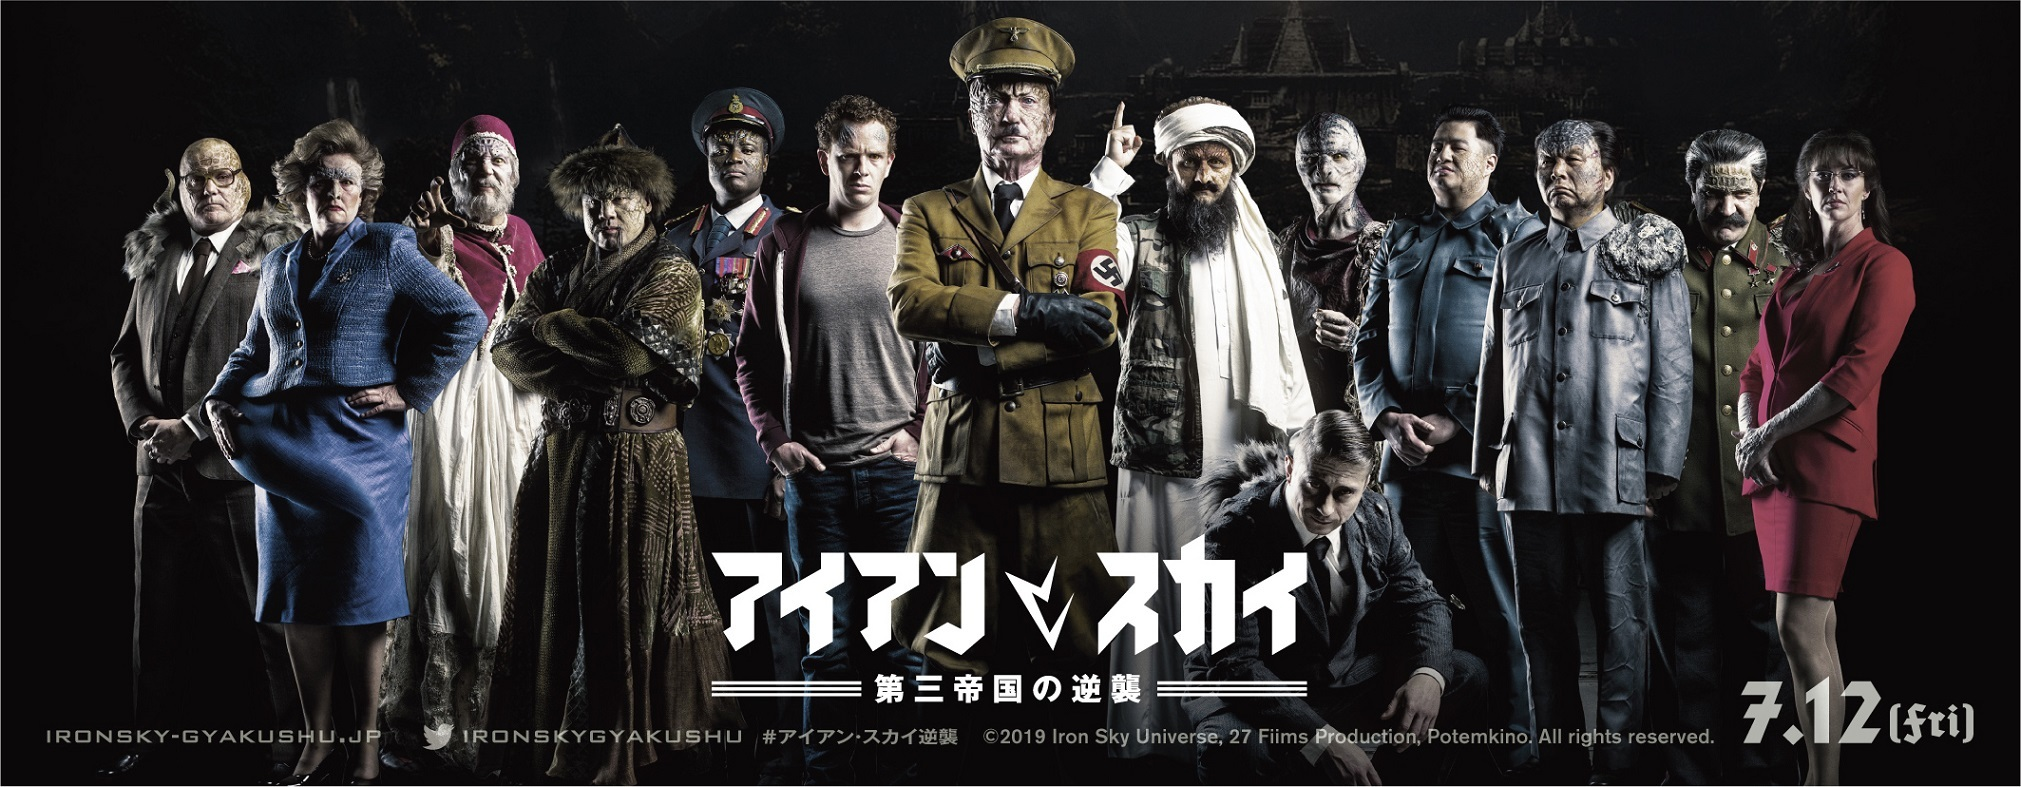 (C)2019 Iron Sky Universe, 27 Fiims Production, Potemkino. All rights reserved.